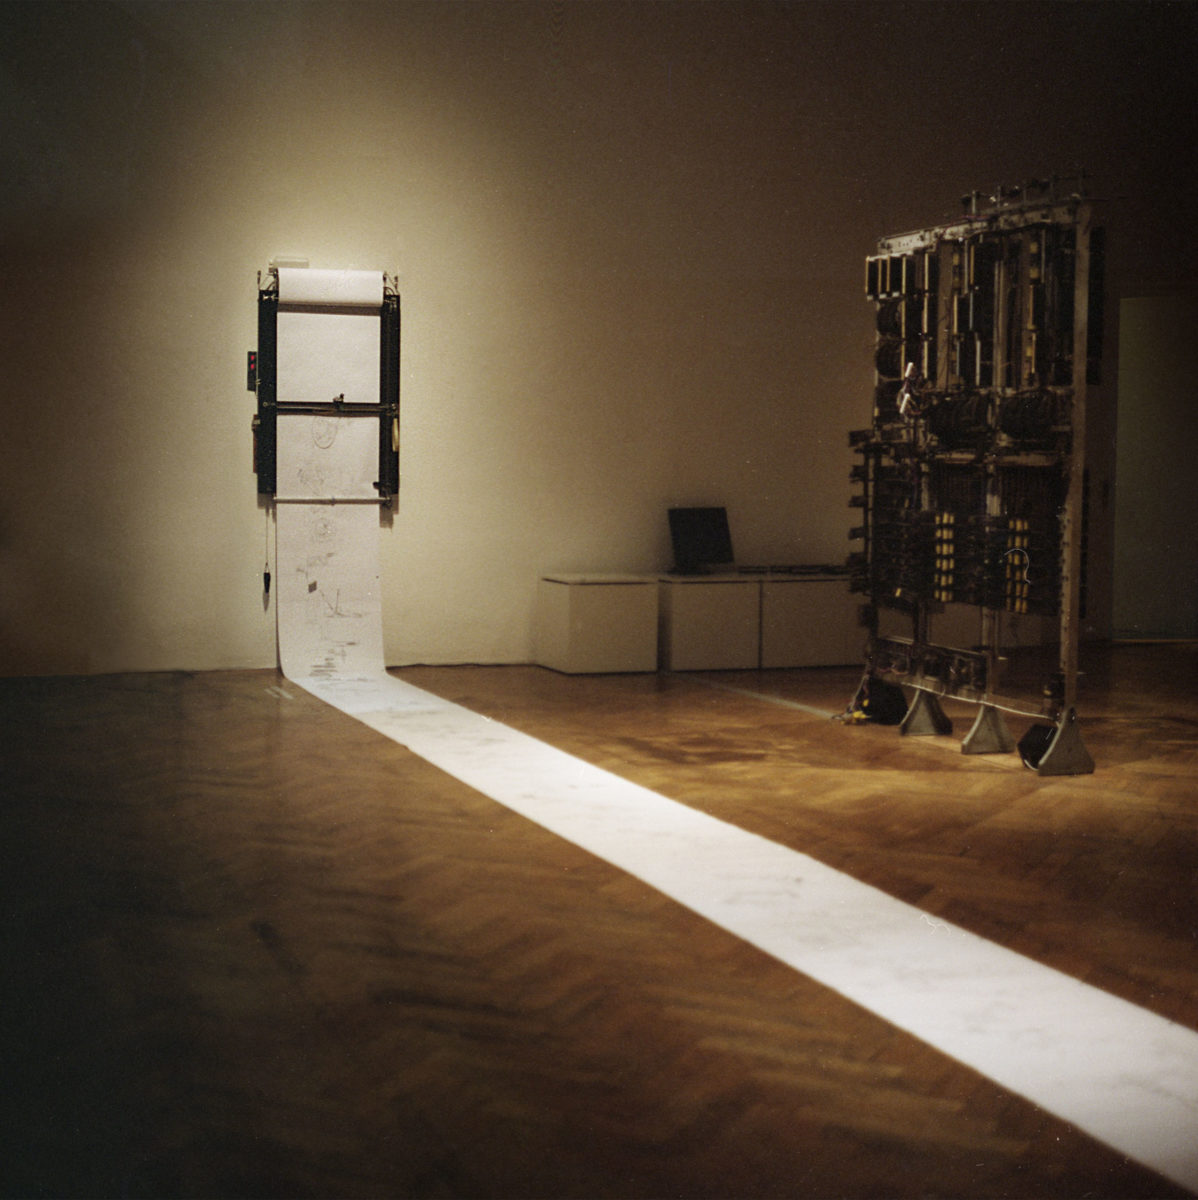 Perpetual Storytelling Apparatus, 2008, in cooperation with Benjamin Maus, courtesy the artists and alexander levy, Berlin